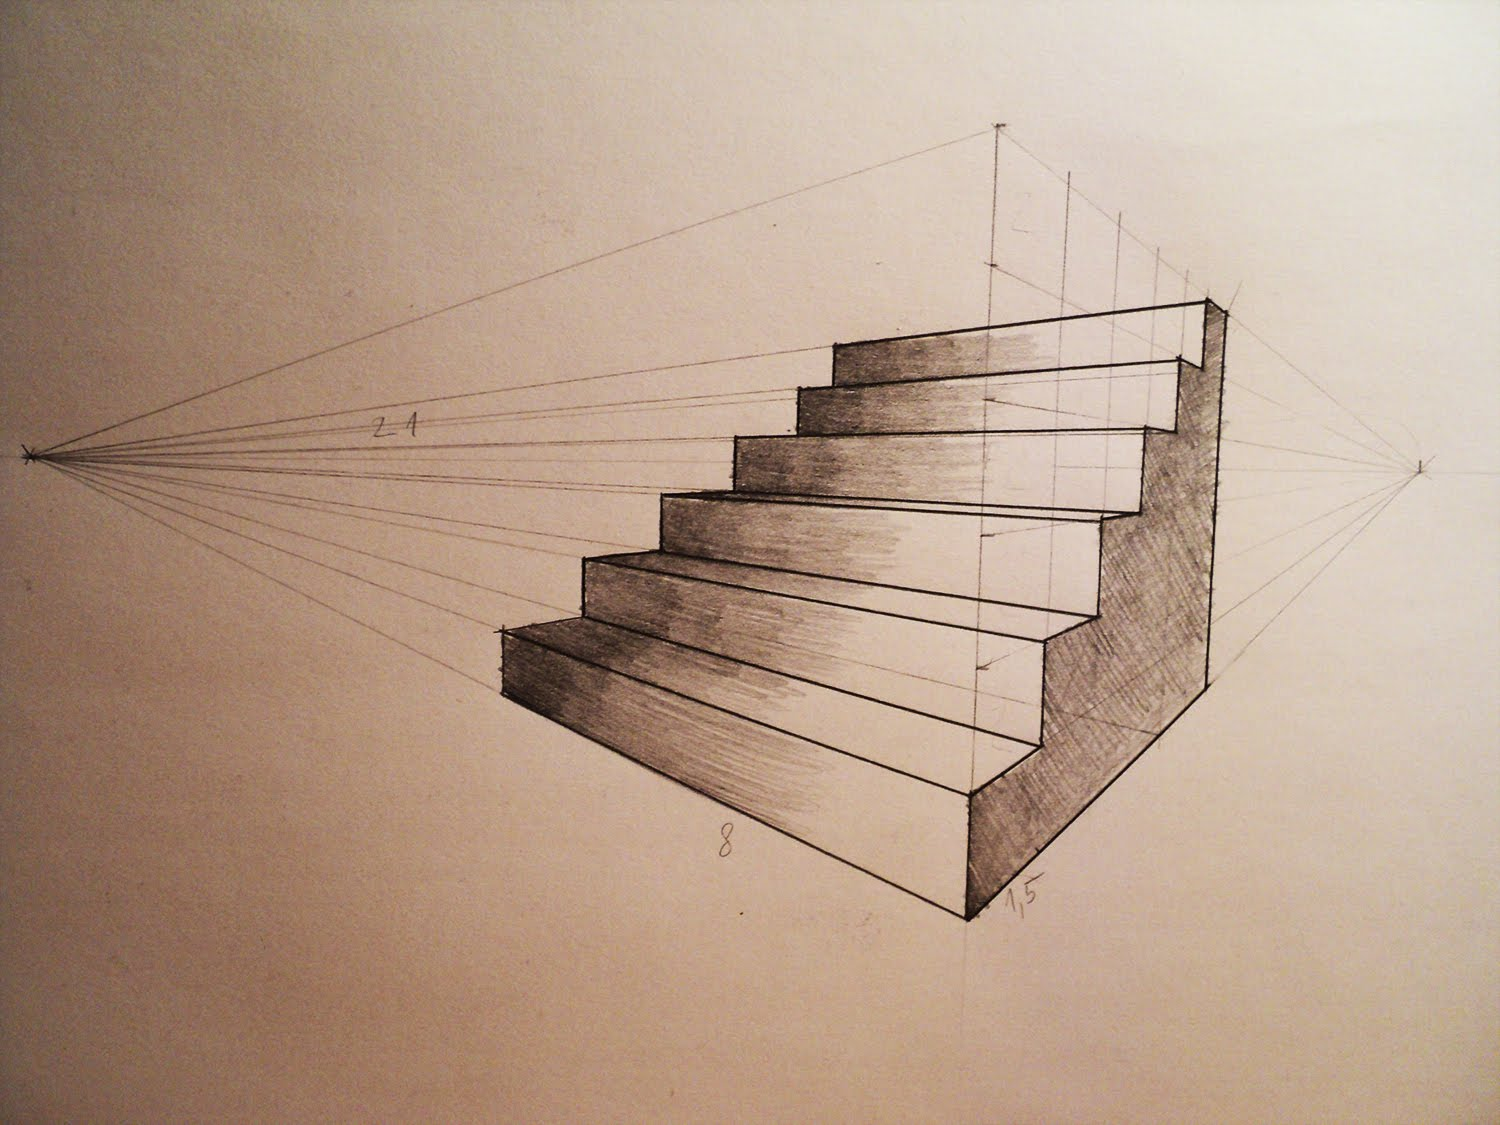 Drawn office two point Perspective  YouTube stairs to